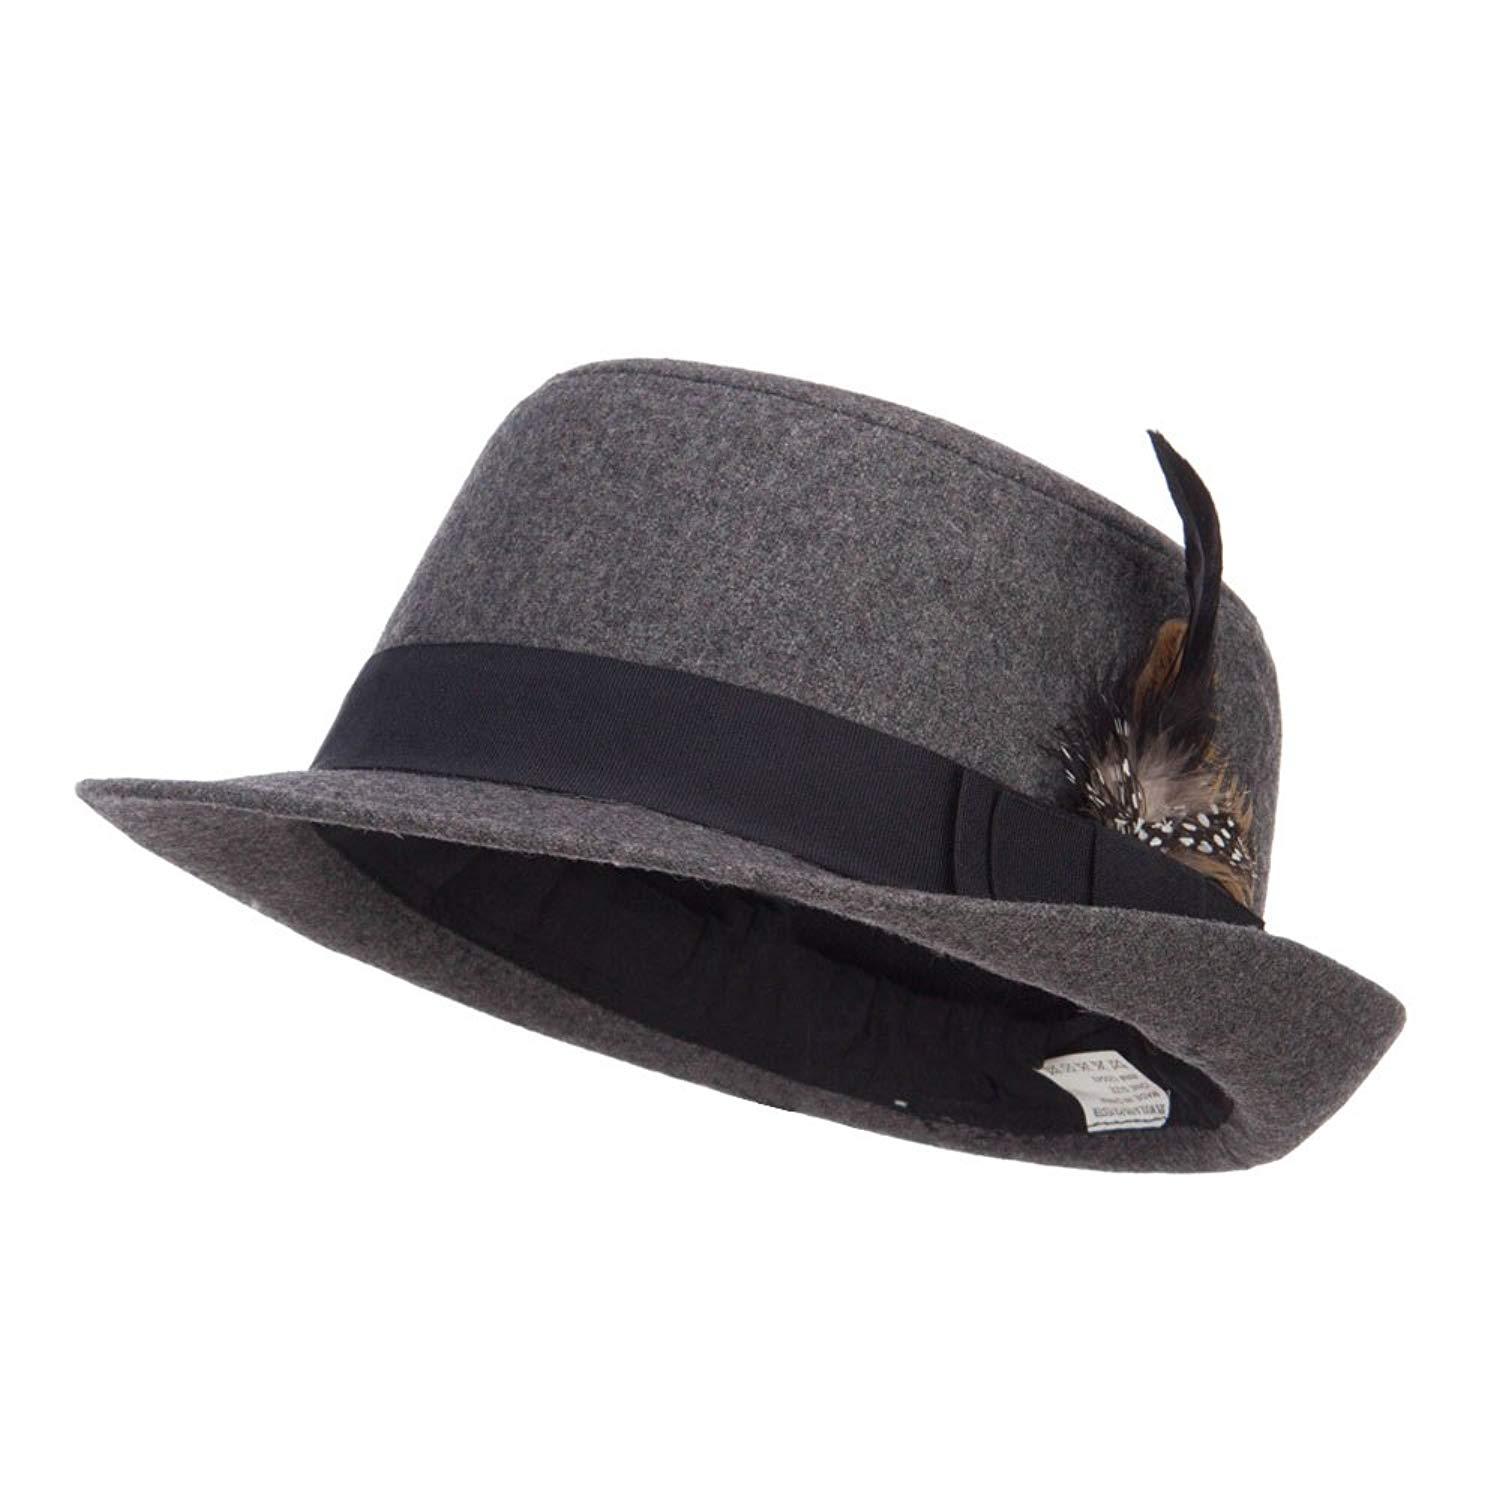 31c454aefb0 Get Quotations · Round Top Wool Blend Fedora